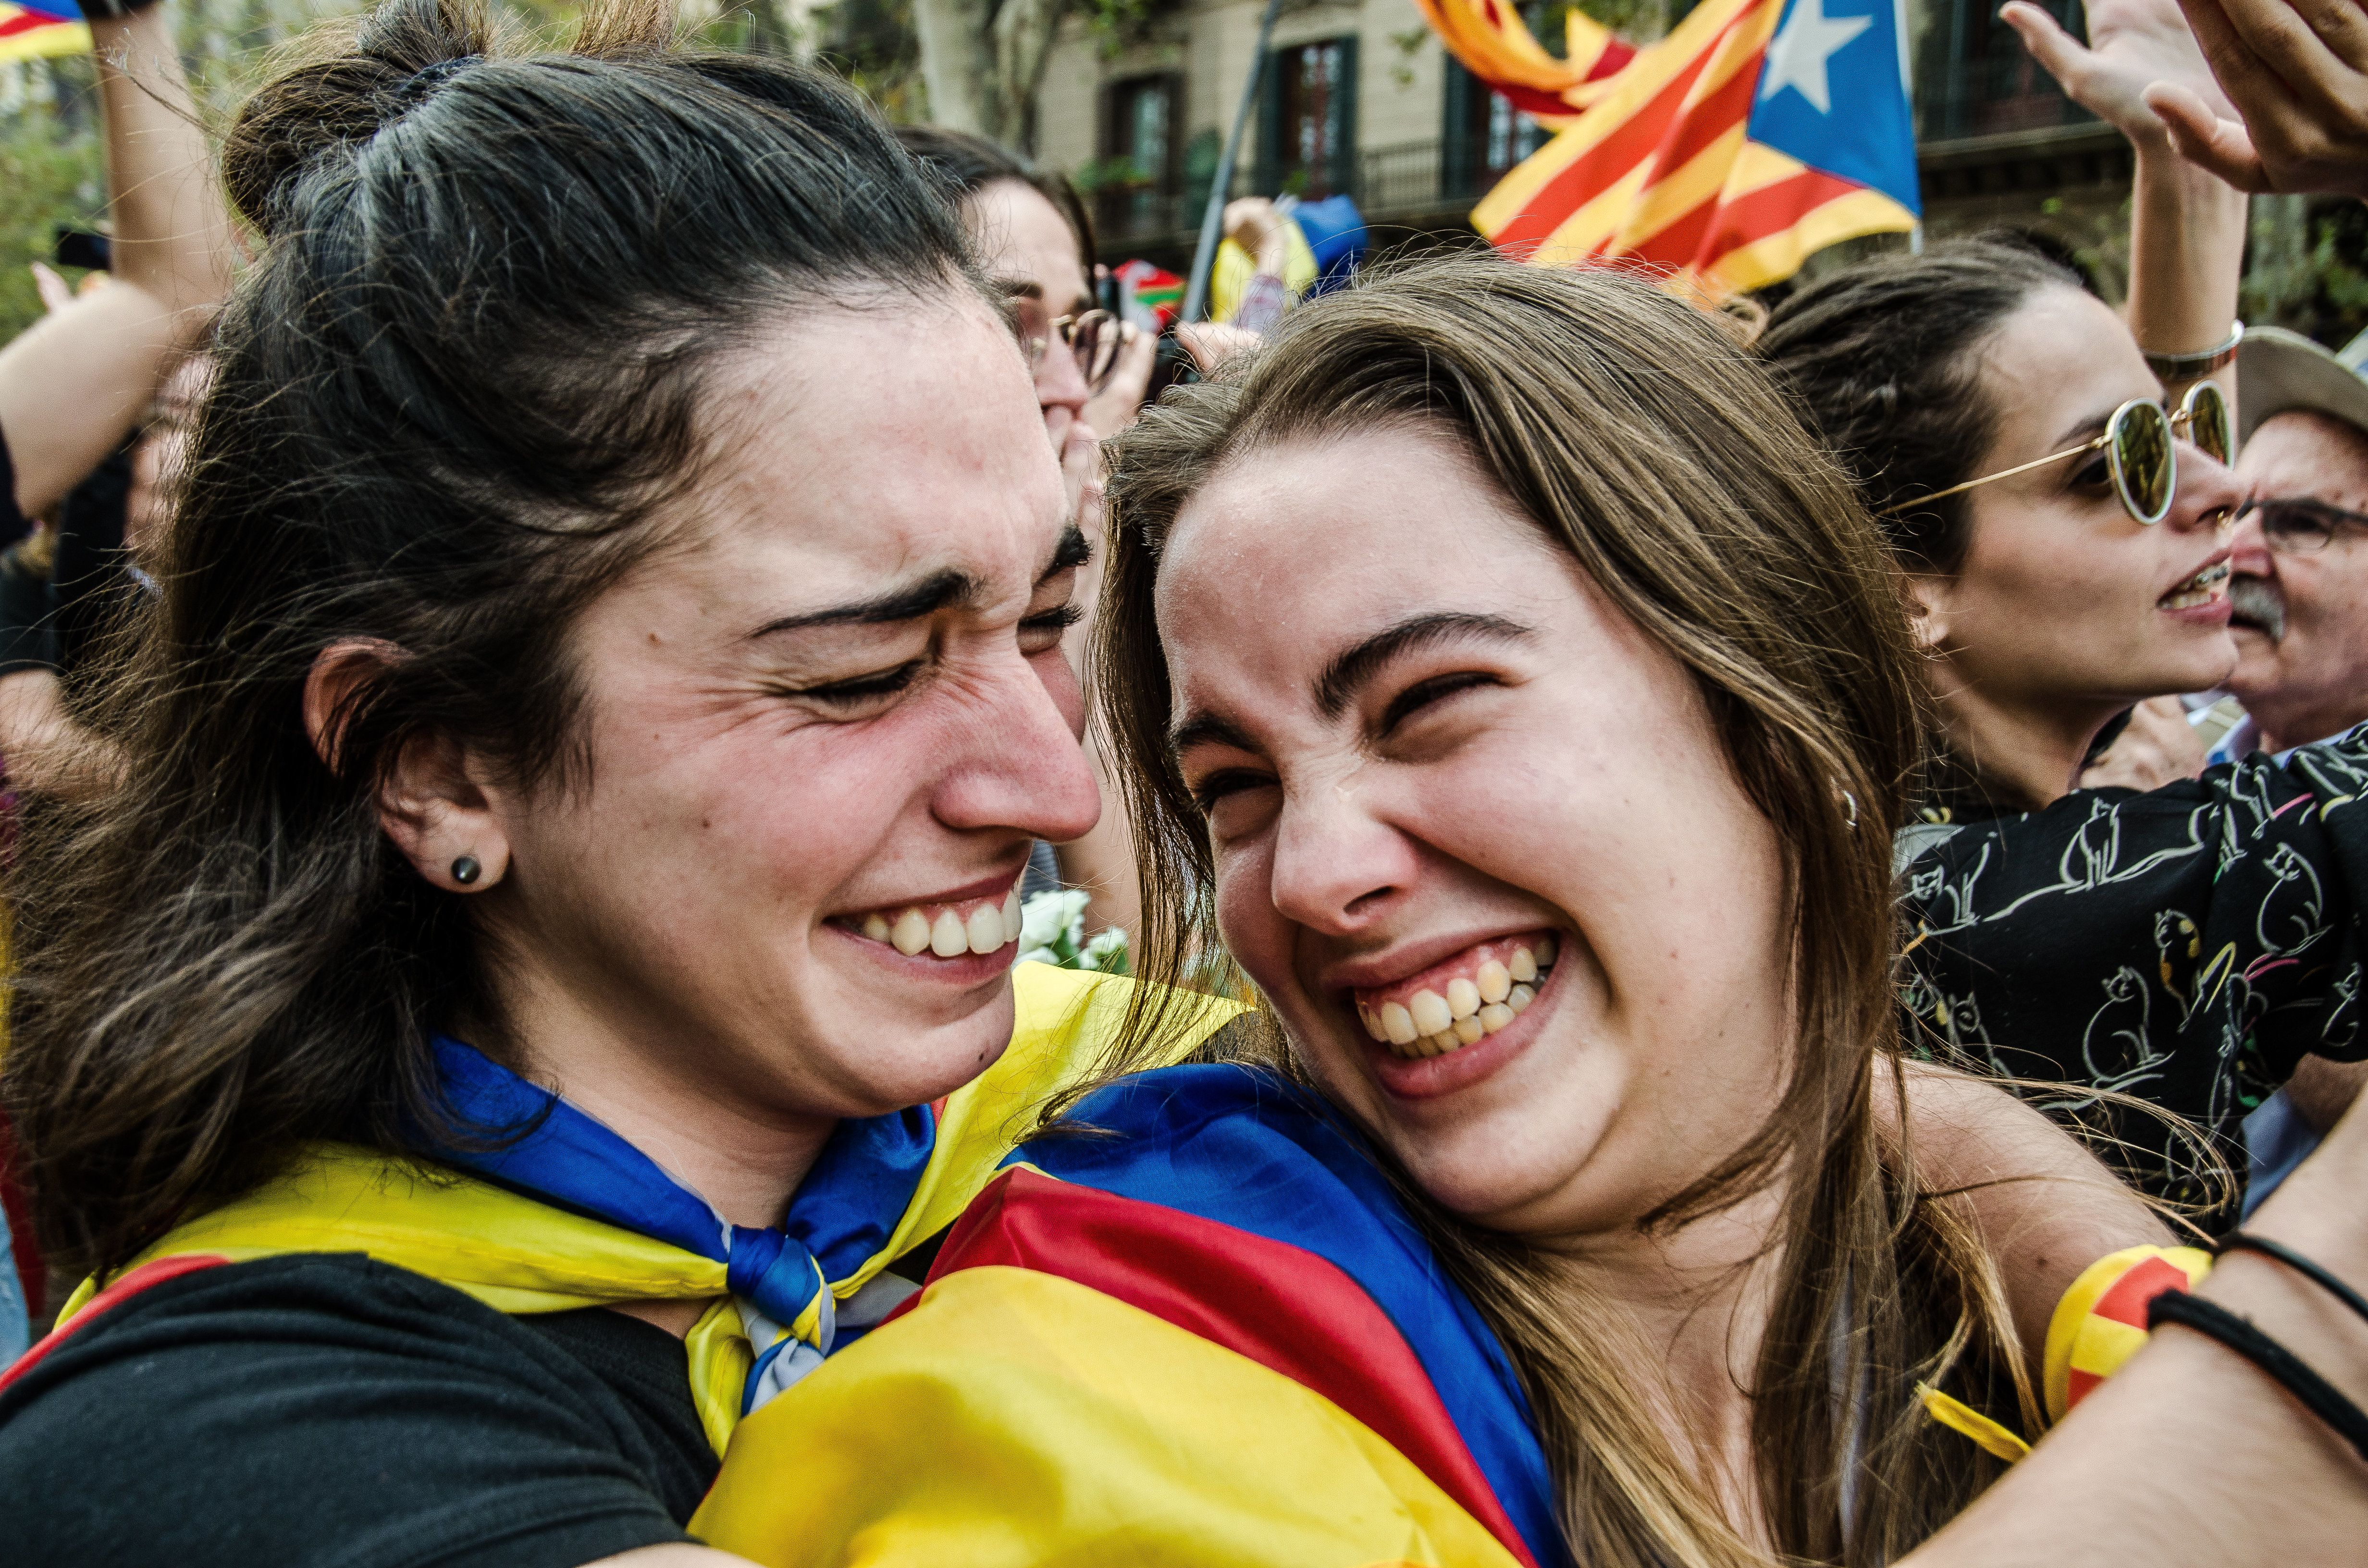 BARCELONA, CATALONIUA, SPAIN - 2017/10/27: Two pro independence supporters seen hugging each other. The public express joy and happiness following the Declaration of the Catalan Republic as they gather in front of screens which shows the live debate from the parliament. Finally, after a long morning of parliamentary debate, the pro-sovereignty majority of the Catalan Parliament wins and declares the independence of Catalonia. The constituent process of the Catalan Republic will begin. (Photo by Paco Freire/SOPA Images/LightRocket via Getty Images)